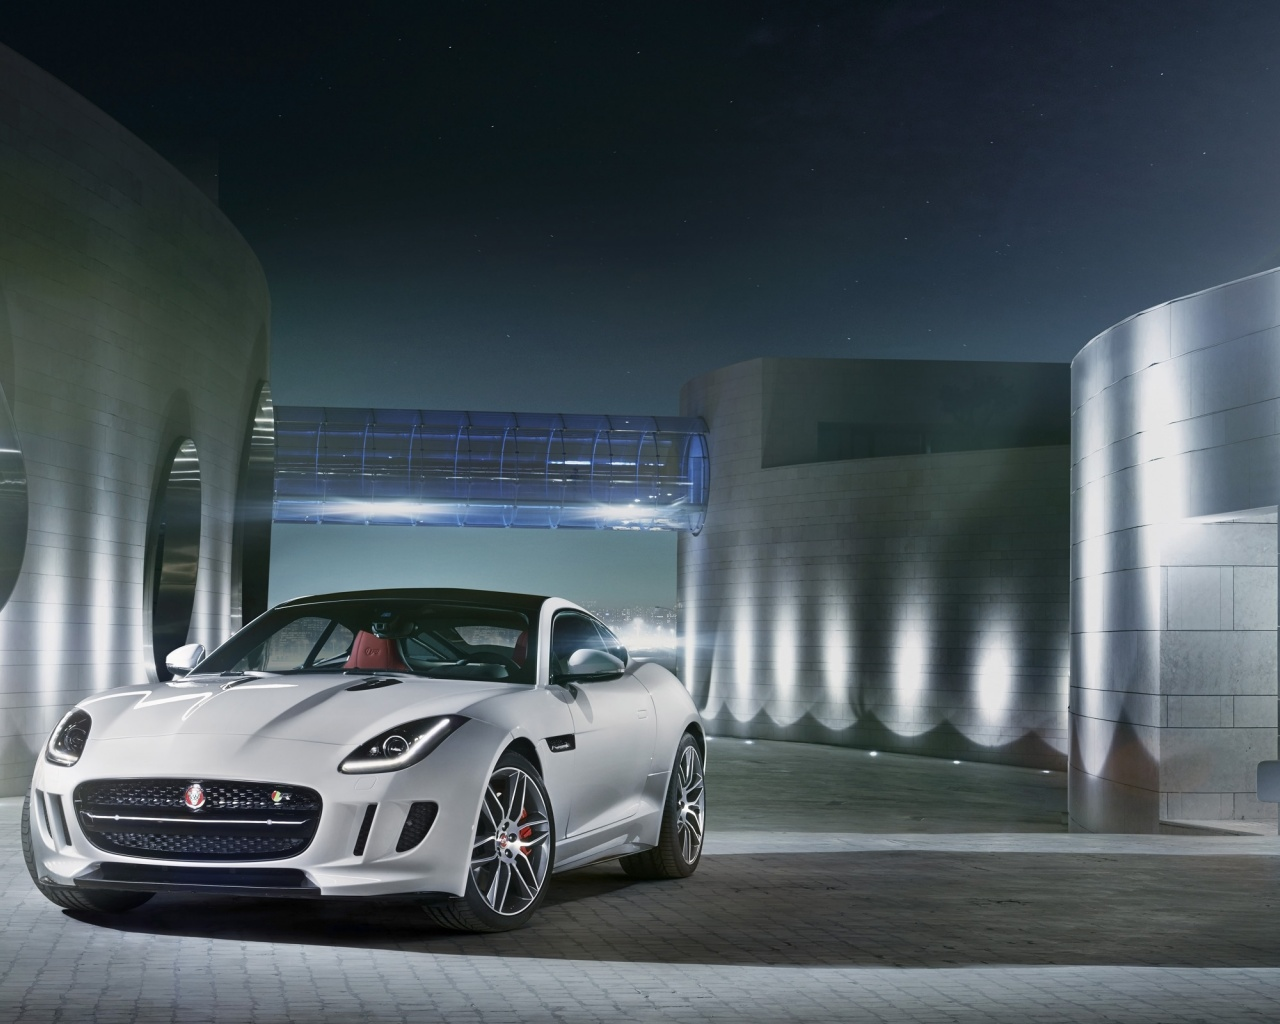 1280x1024 2014 Jaguar F-Type R Coupe Polaris White Static Front Angle